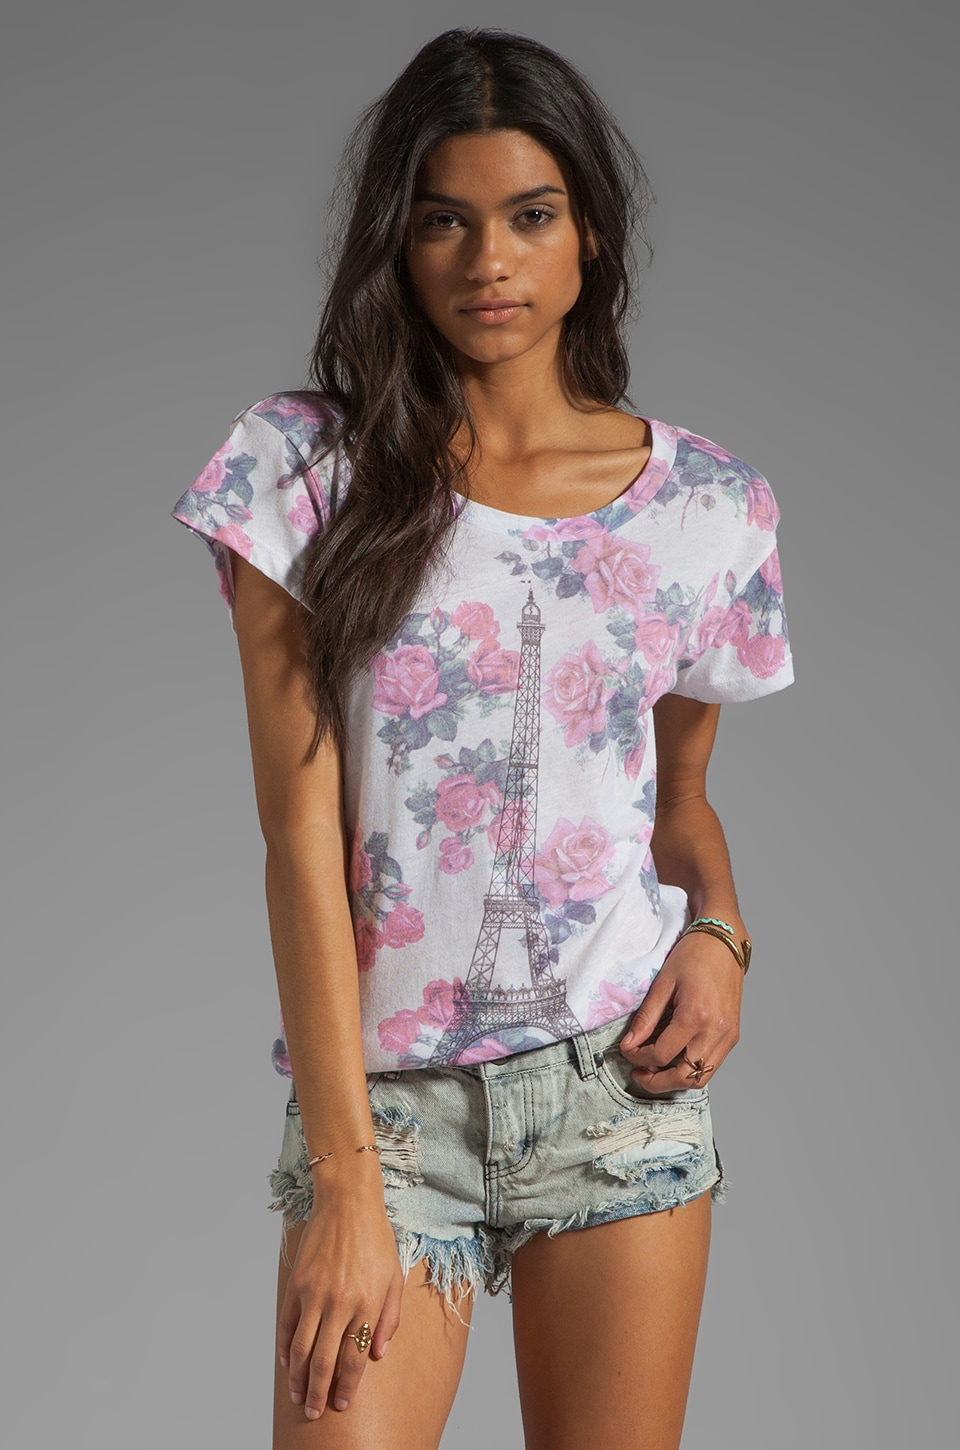 Wildfox Couture Tour Eiffel Floral Tee in Dirty White